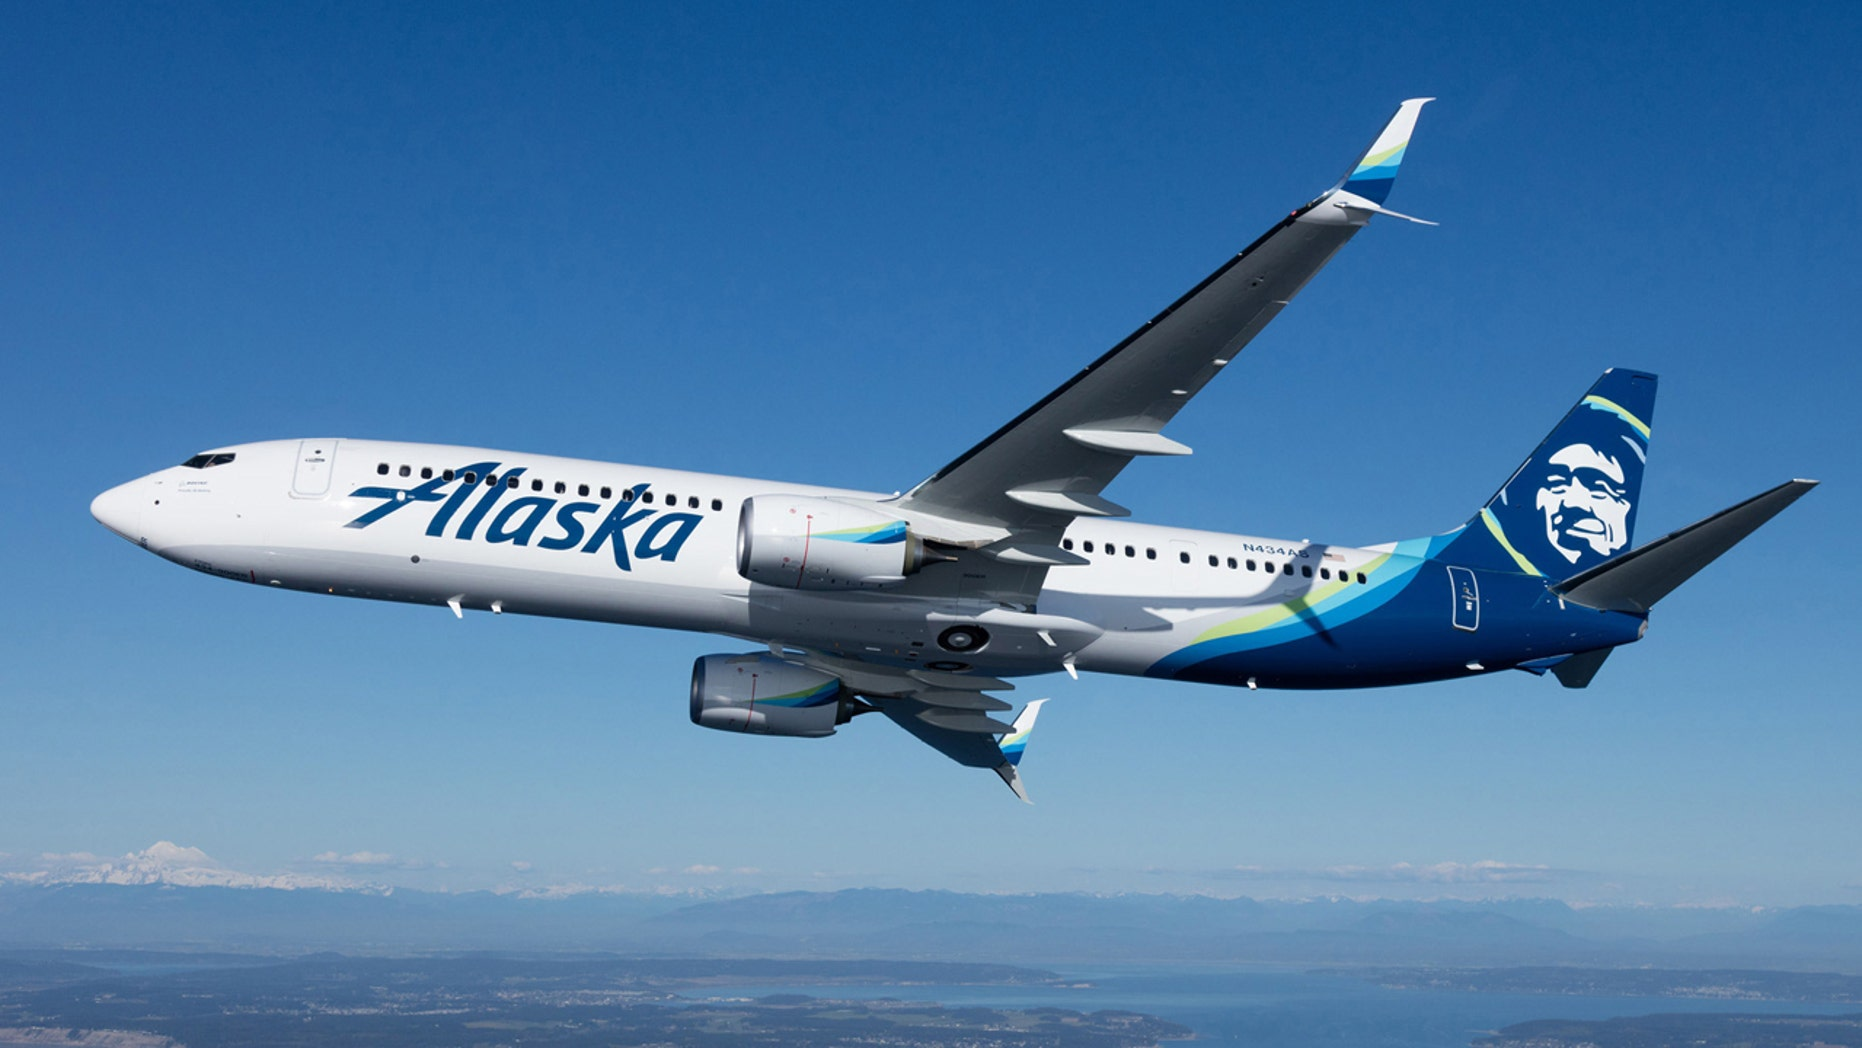 Alaska Airlines with lowered fare for Monday and Tuesday in response to the Amtrack derailment.